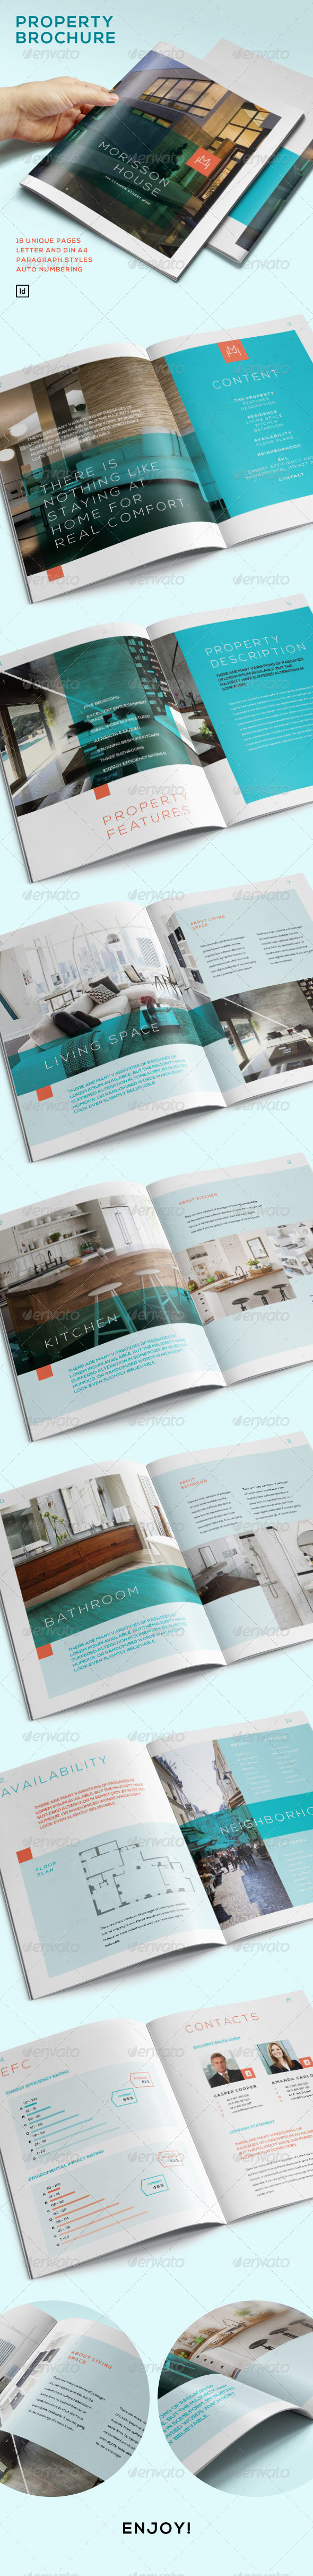 Property Brochure - Corporate Brochures